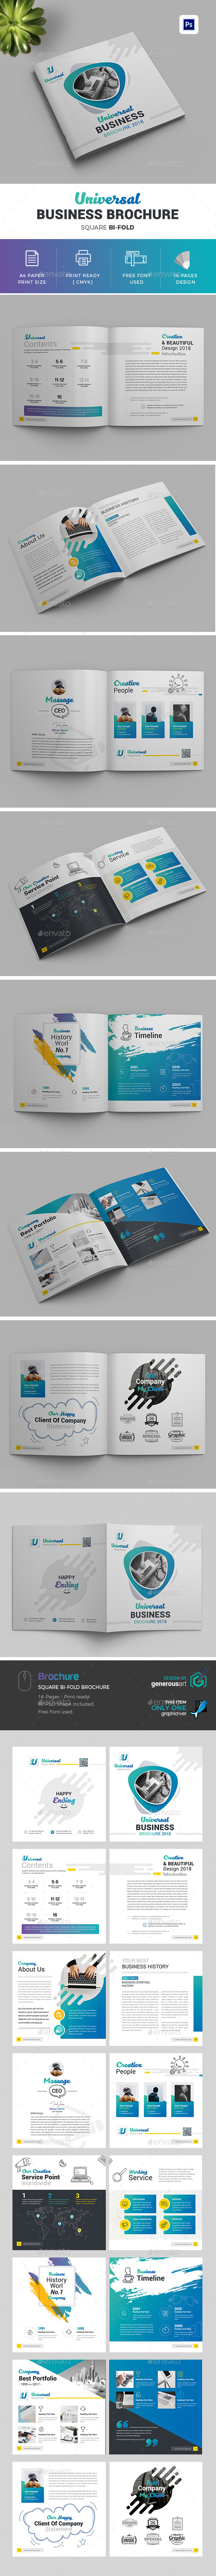 GraphicRiver 2018 Square Bi-Fold Brochure 20822990